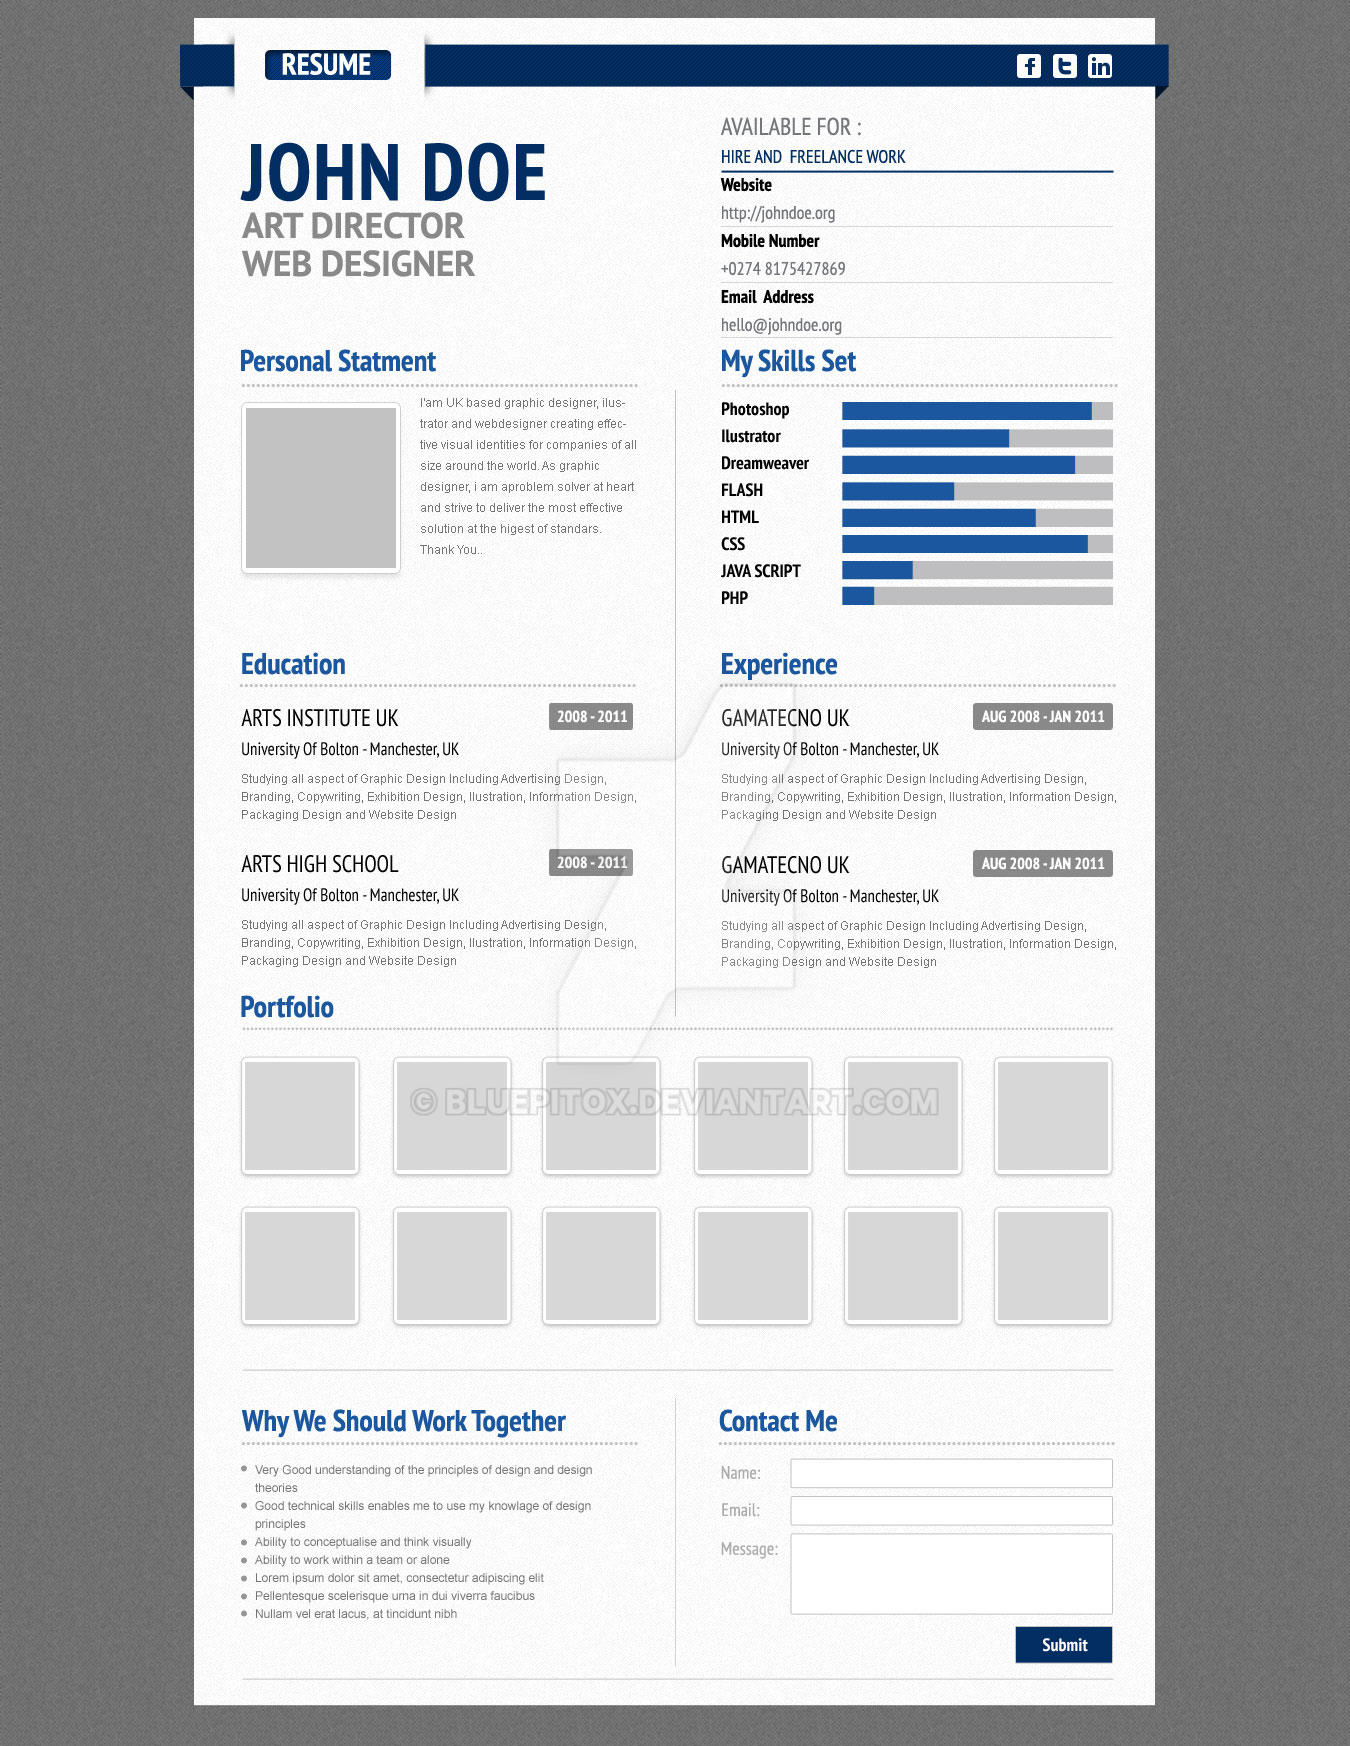 aurel resume premium template by bluepitox on deviantart